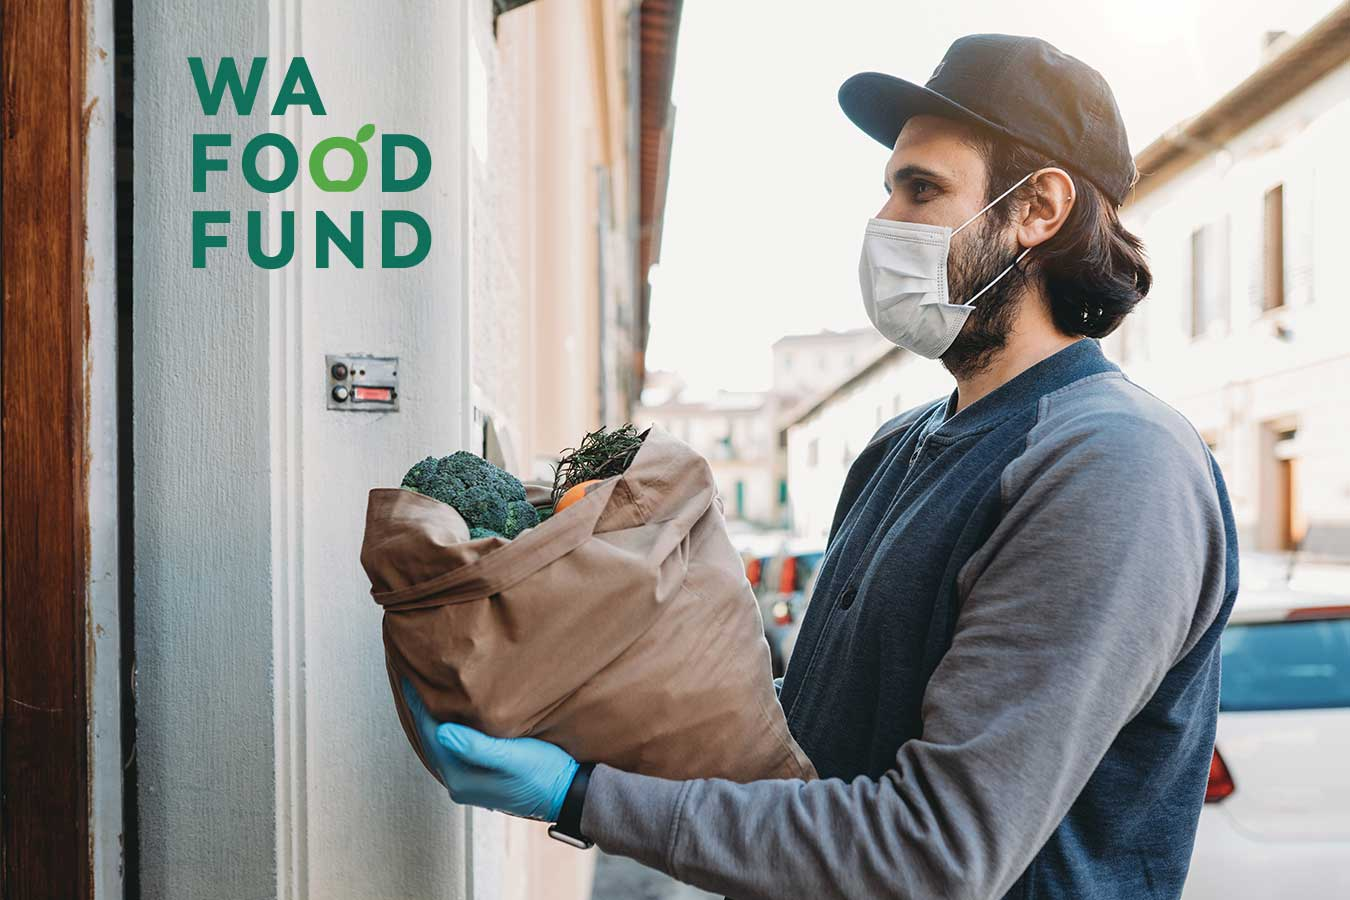 WA Food Fund image with a man in hygiene mask and gloves delivering bag of food standing in a doorway